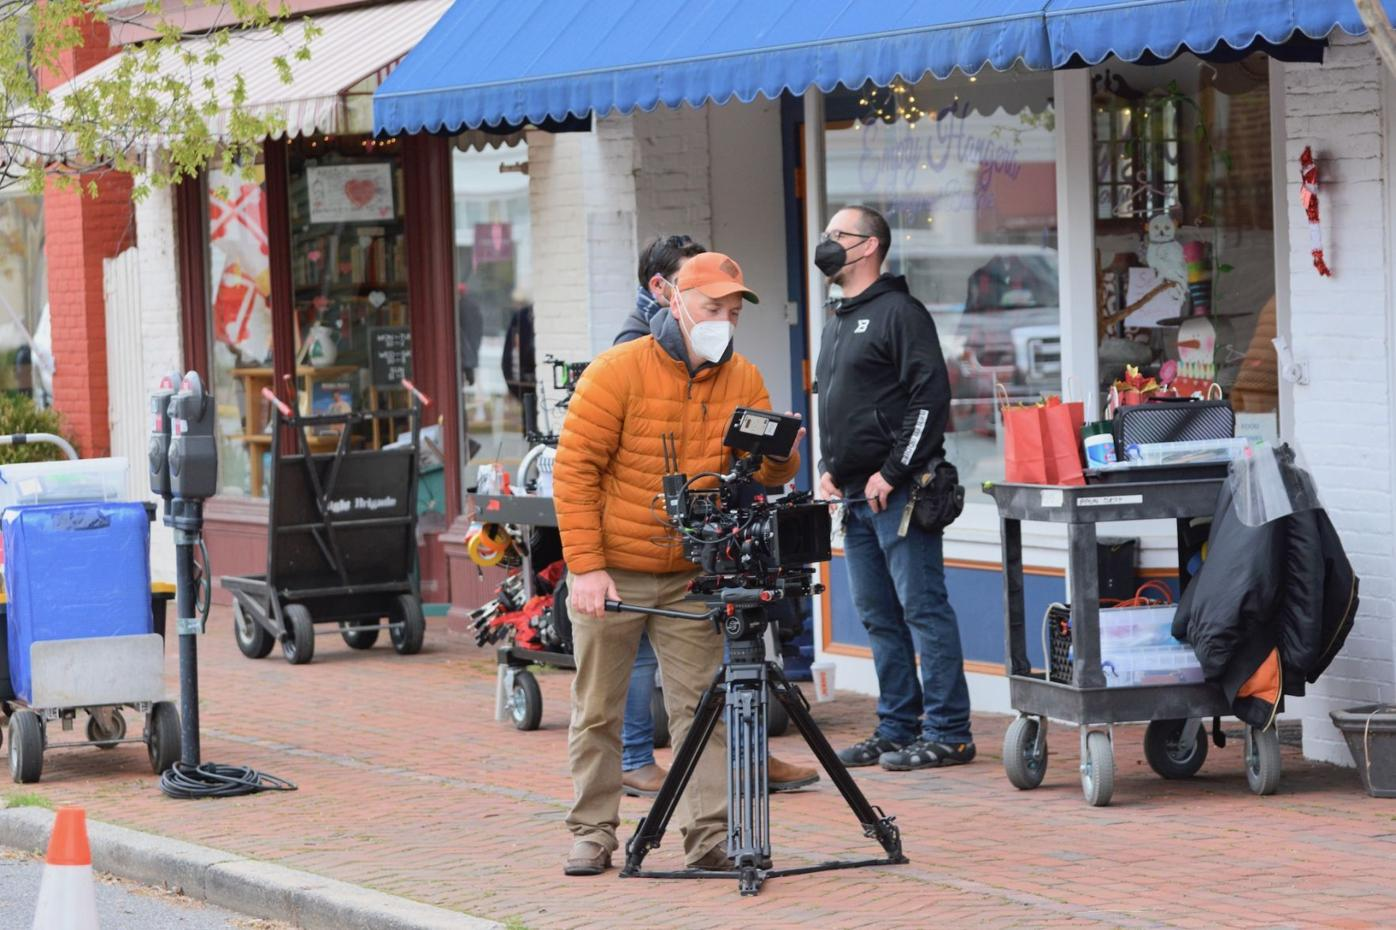 Feature-length movie being filmed in Kent, Queen Anne's